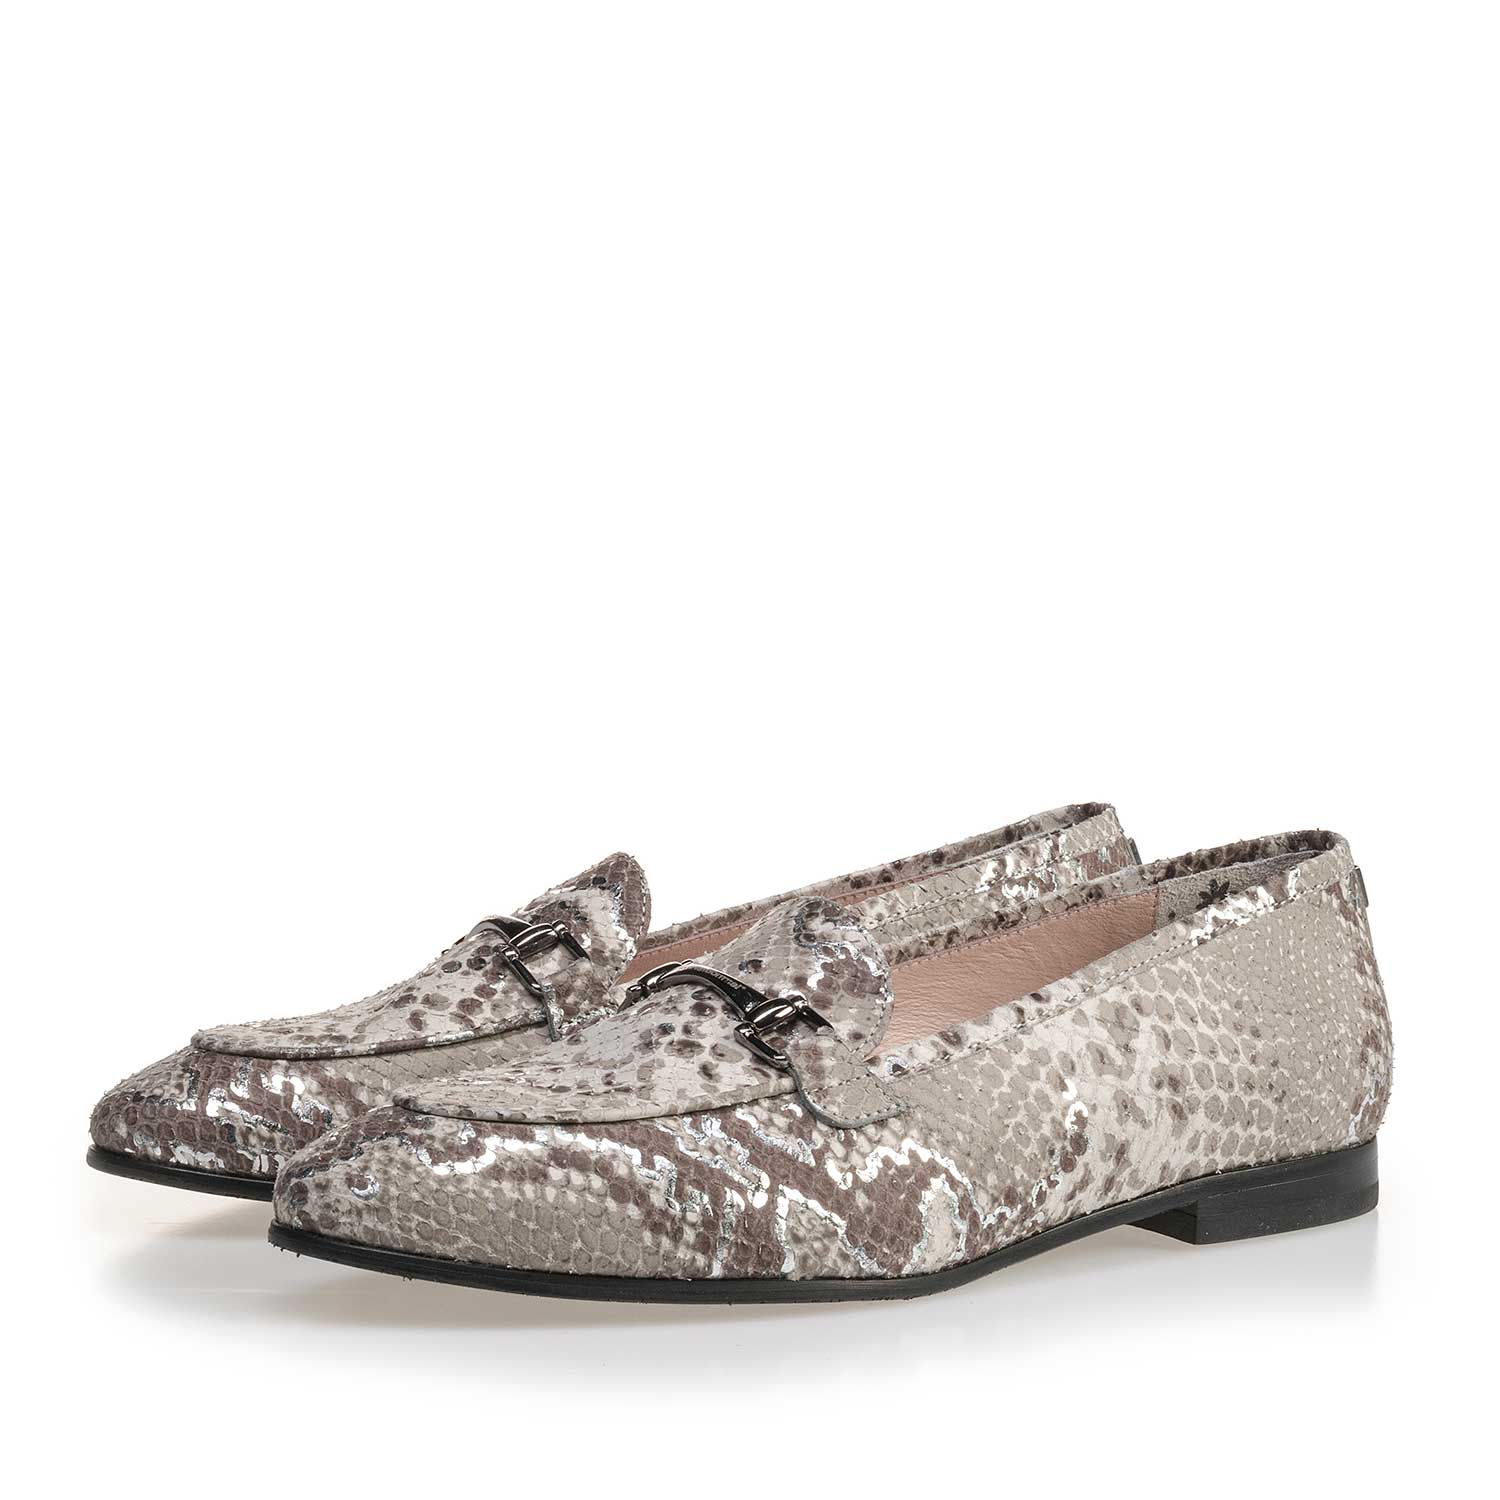 85231/01 - Taupe-coloured leather loafer with snake print